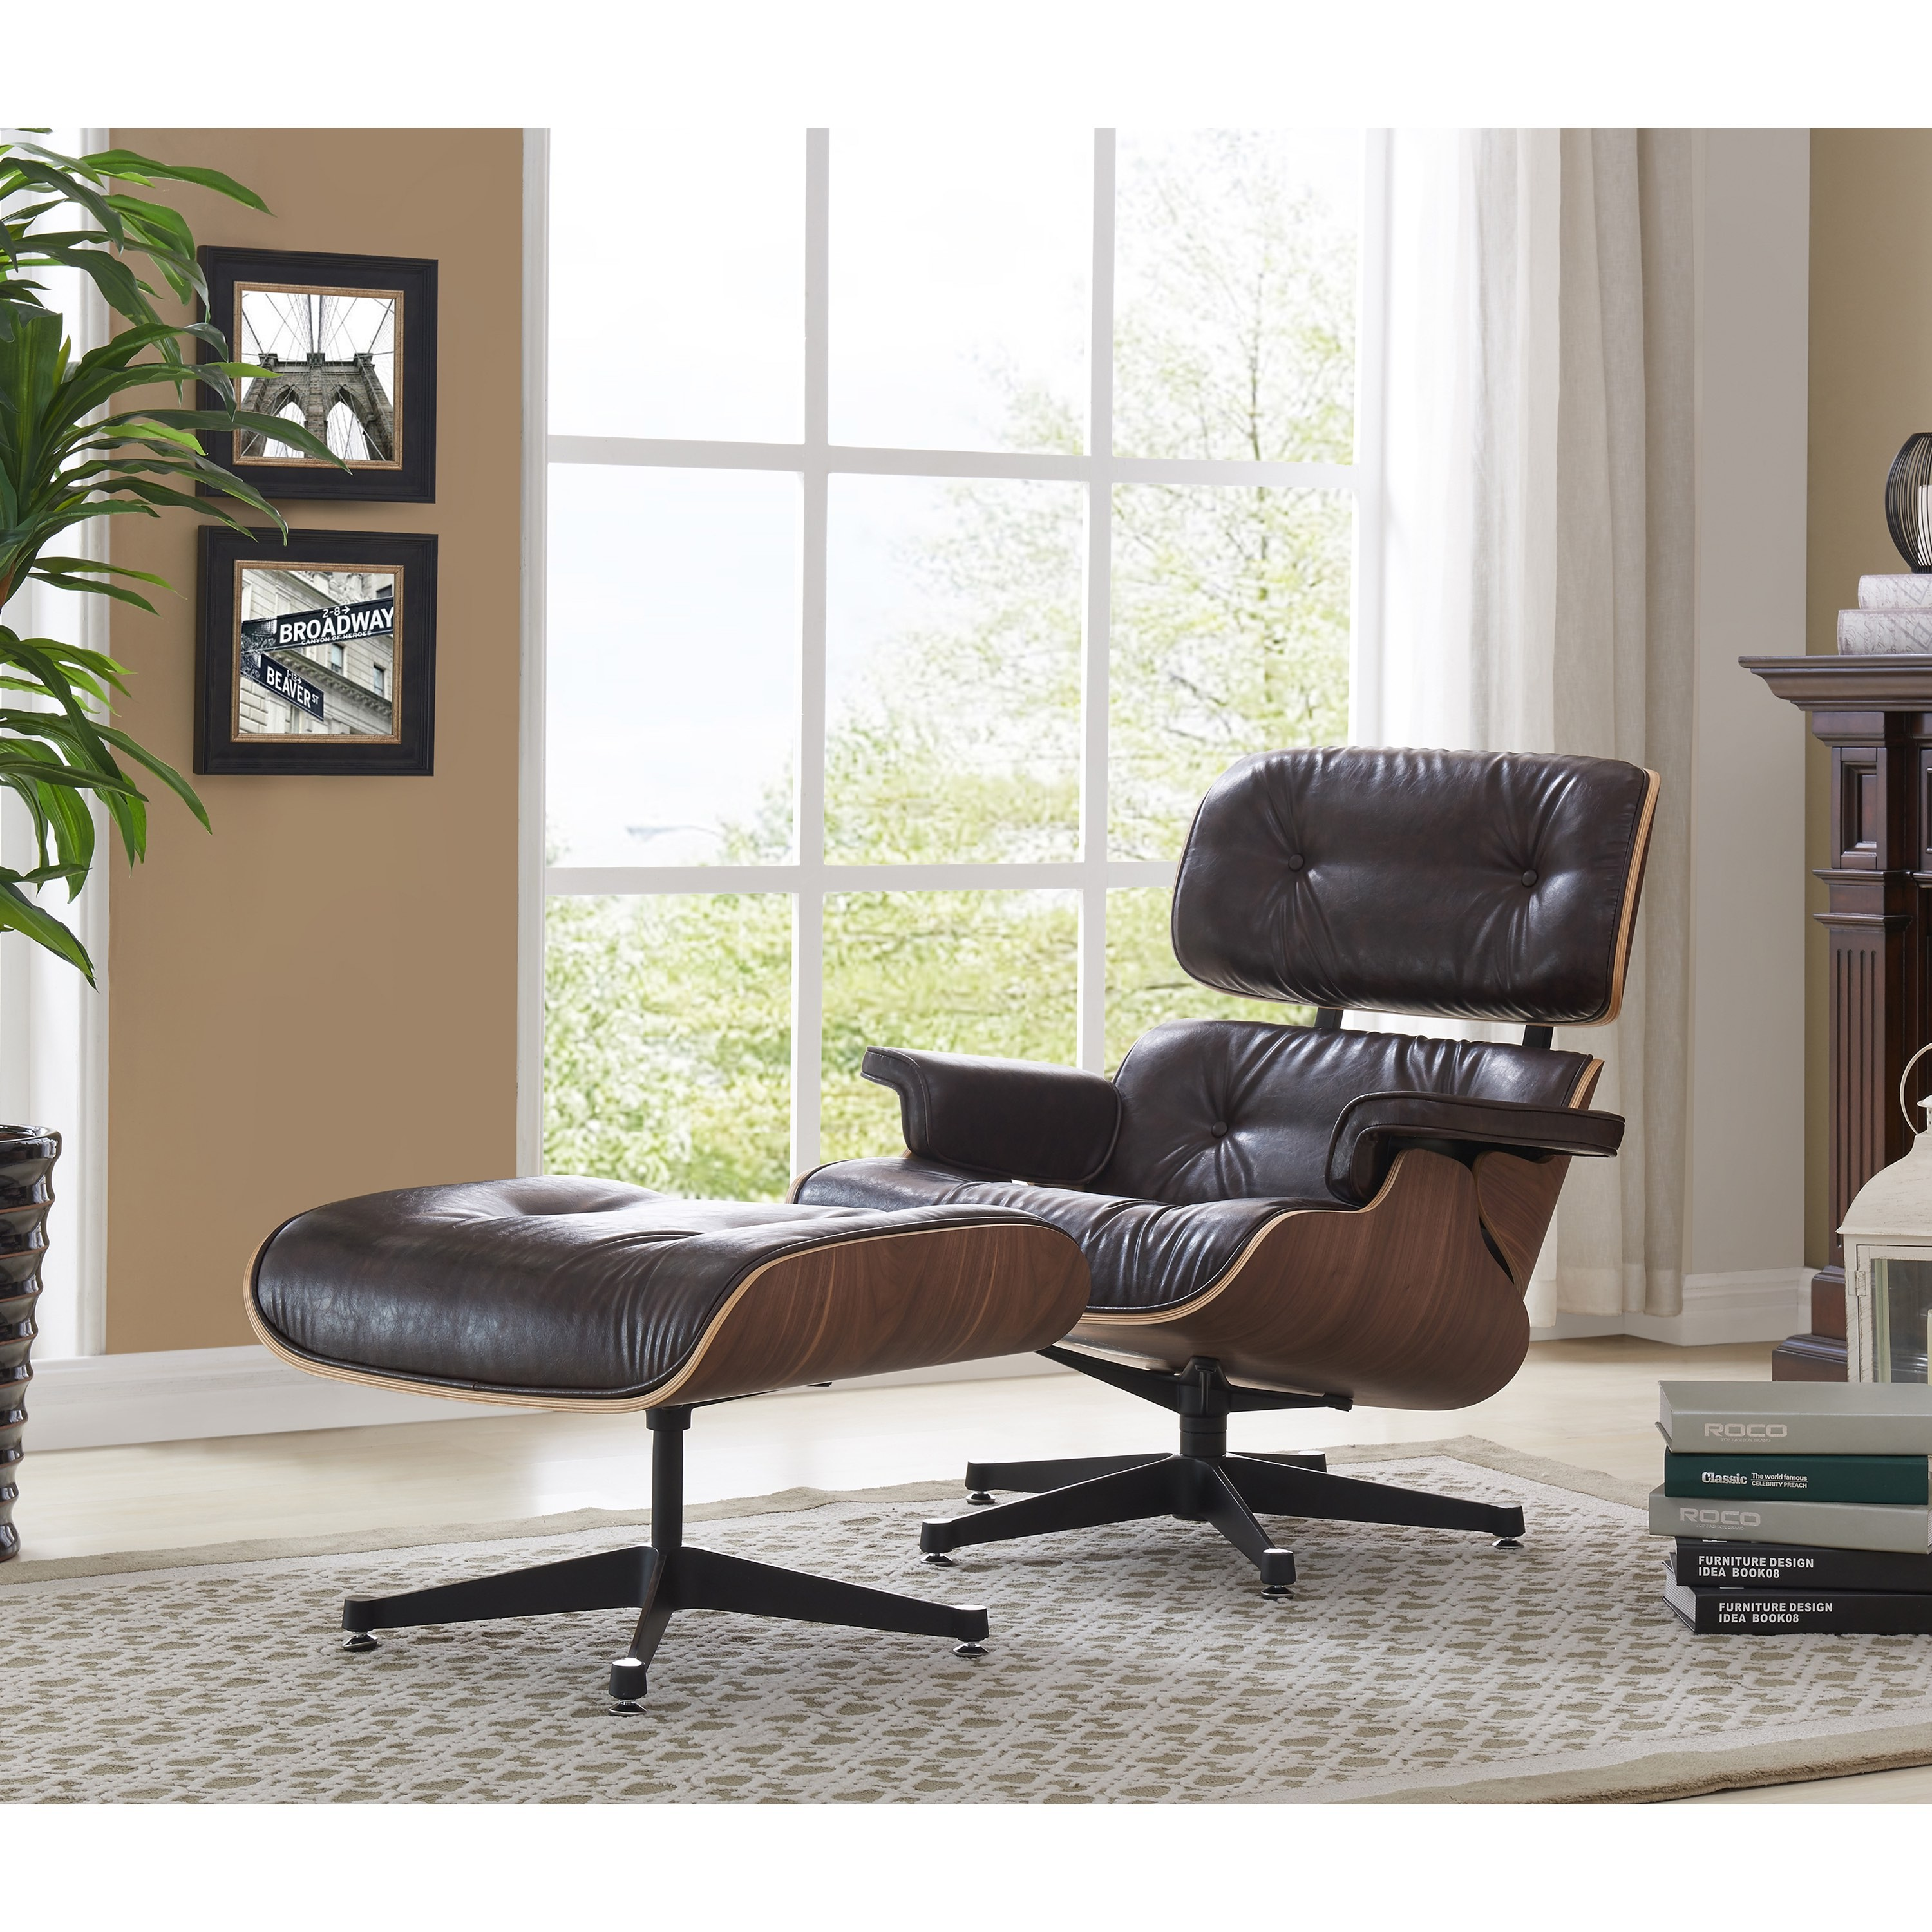 recliner floraville size bent pops reclining full club arm loveseat gray and leather potterybarn dual inspirational furniture new favorite manhattan luxury of chair awesome